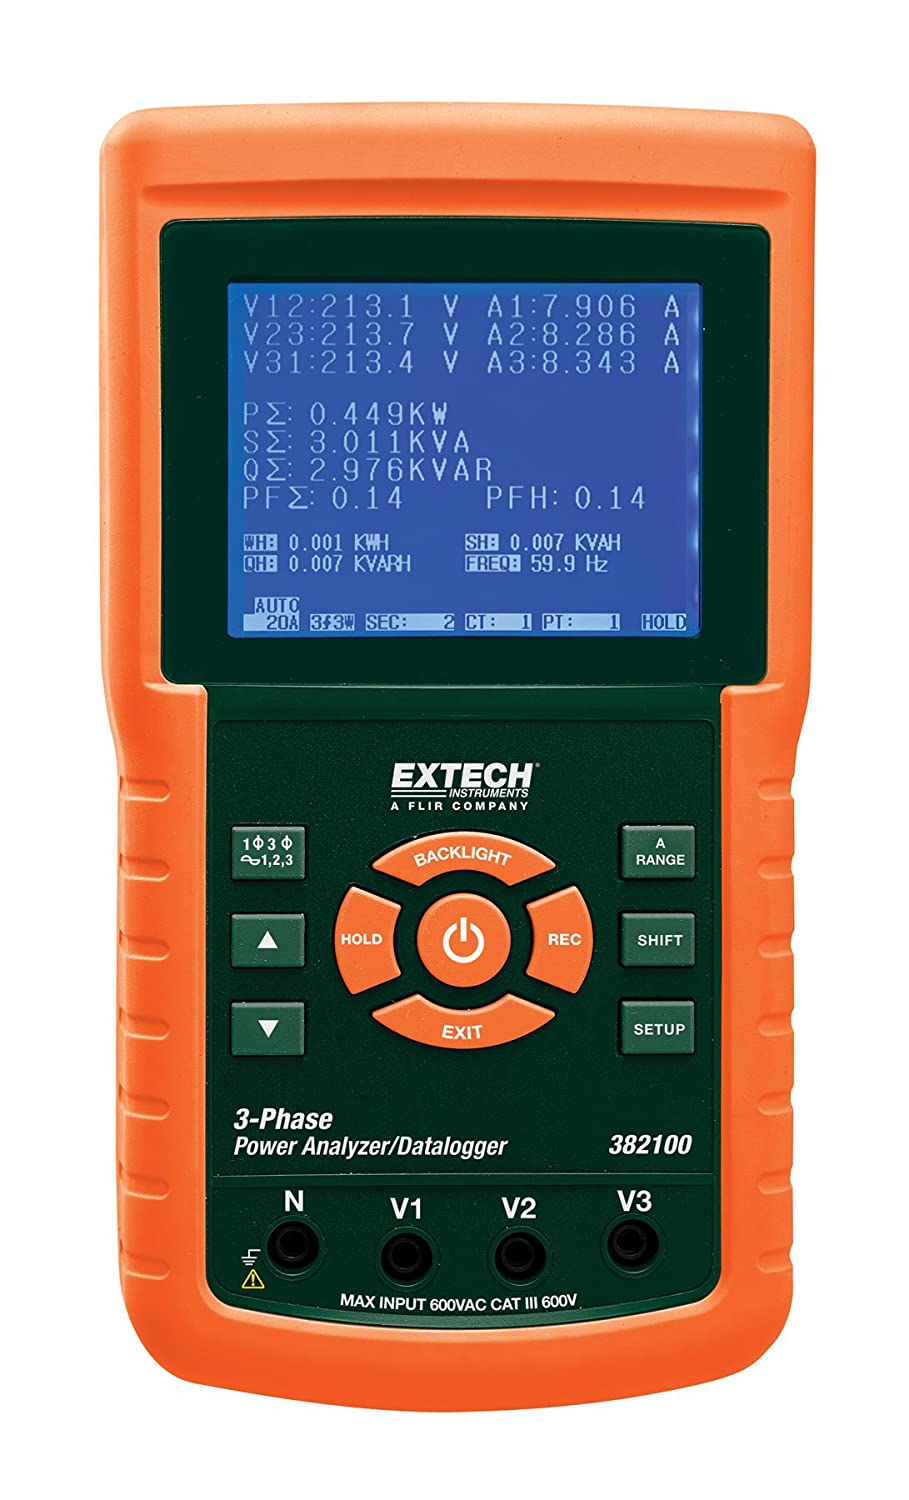 Extech 382100 1200A 3 Phase Power Analyzer Datalogger